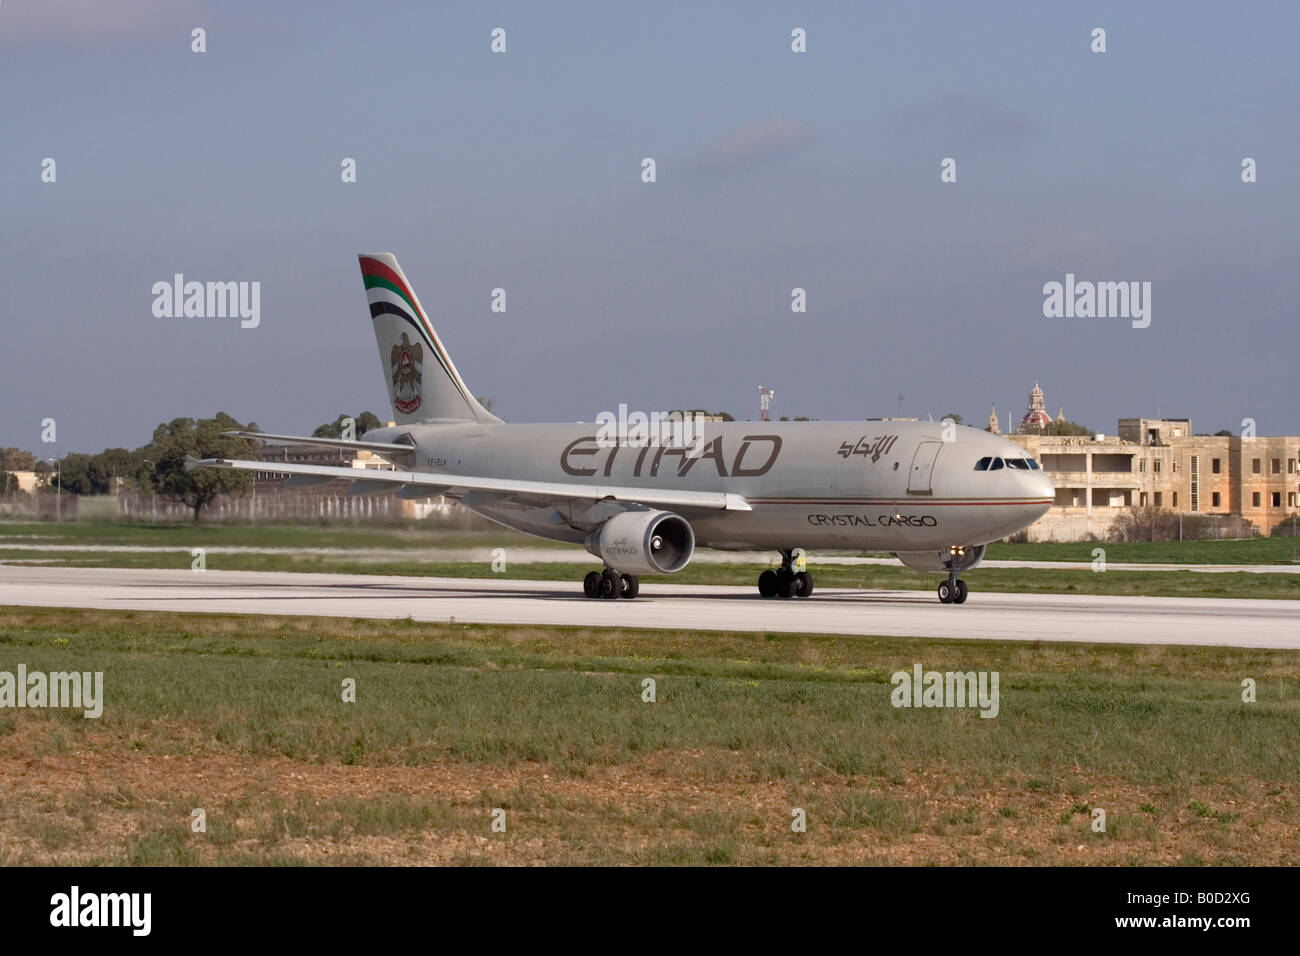 Etihad Crystal Cargo Airbus A300 departing from Malta - Stock Image